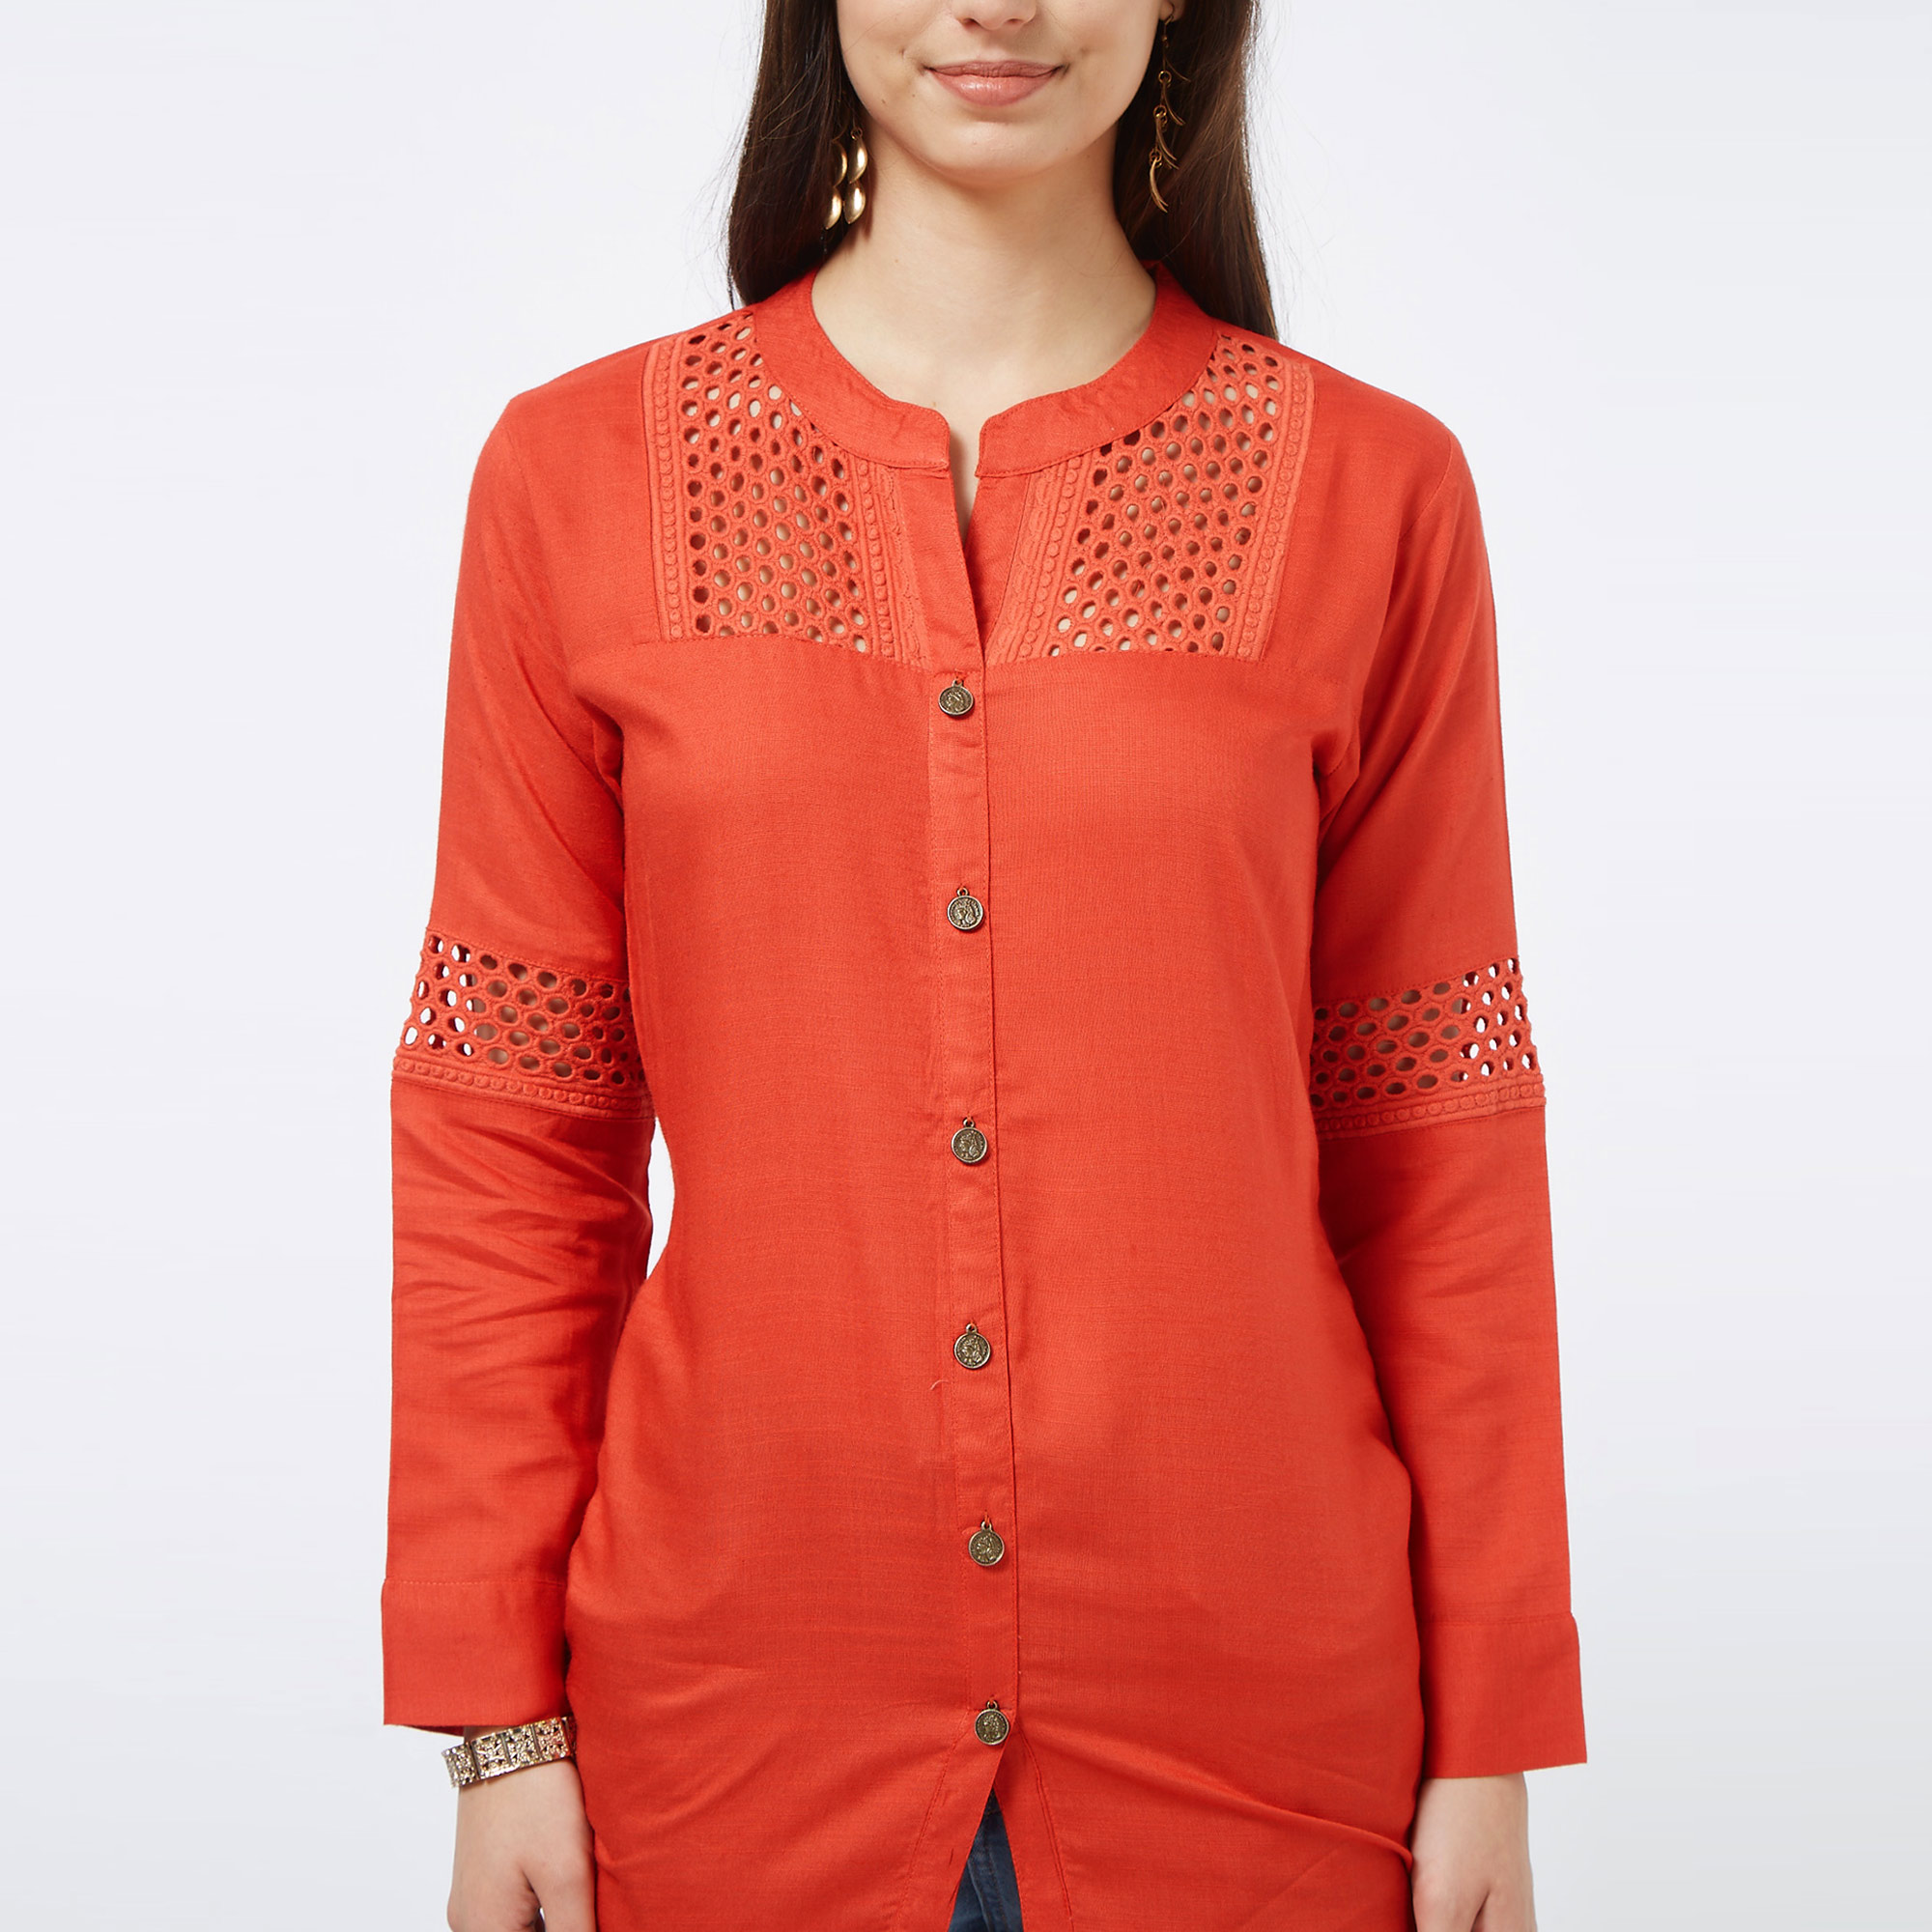 Arresting Red Colored Casual Embroidered Cotton Top